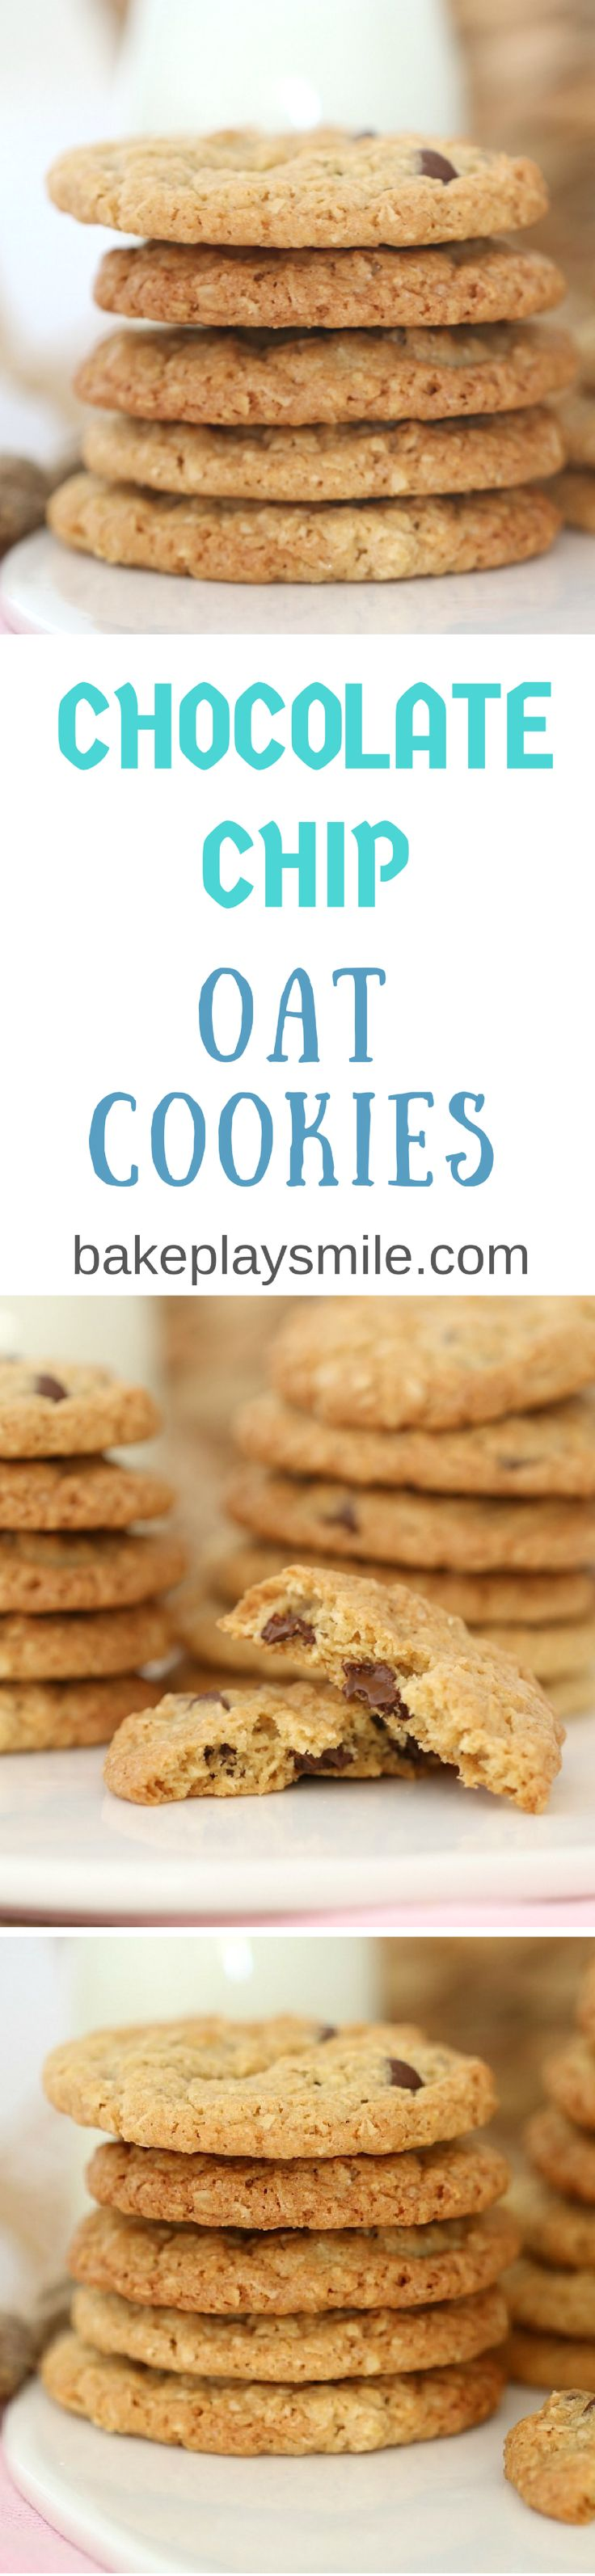 These Chocolate Chip Oat Cookies really are the best of both worlds (part ANZACS + part choc chip bikkie = one totally DELICIOUS cookie!!).   #chocolate #chip #oat #cookies #biscuits #recipe #easy #thermomix #conventional #best